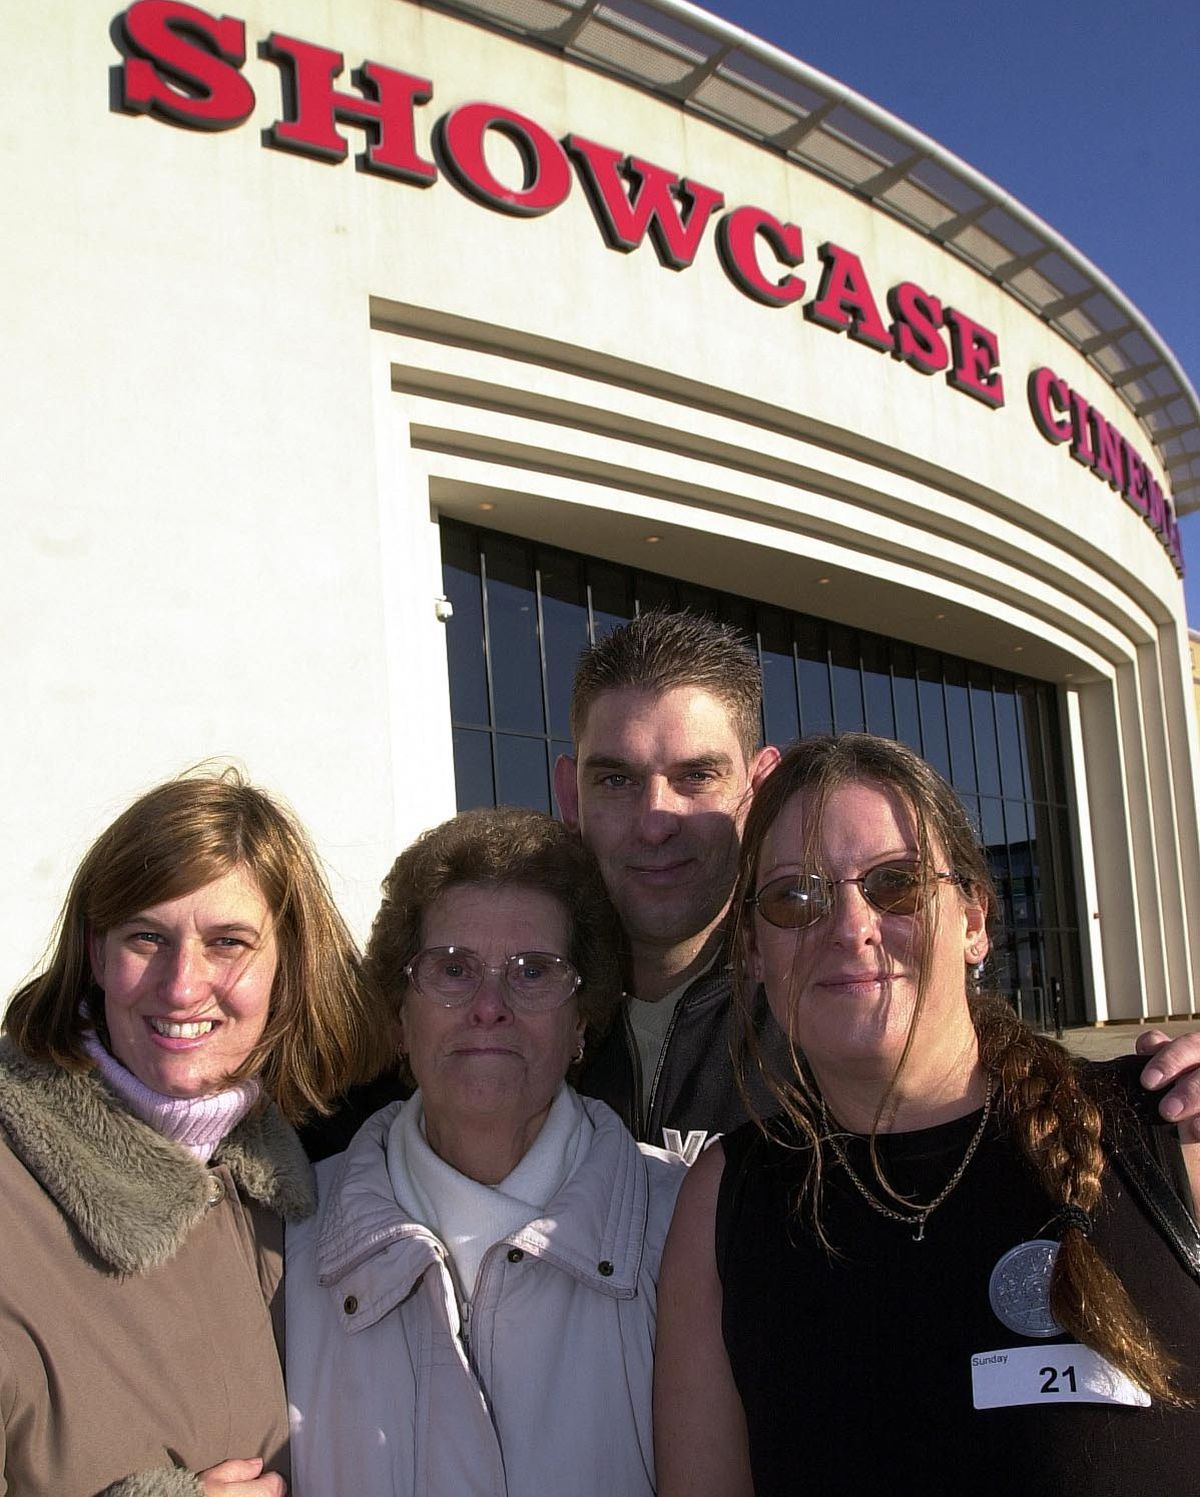 Janice Burns with her sister Annette Sibley, mum Margaret Lane and brother Paul Lane